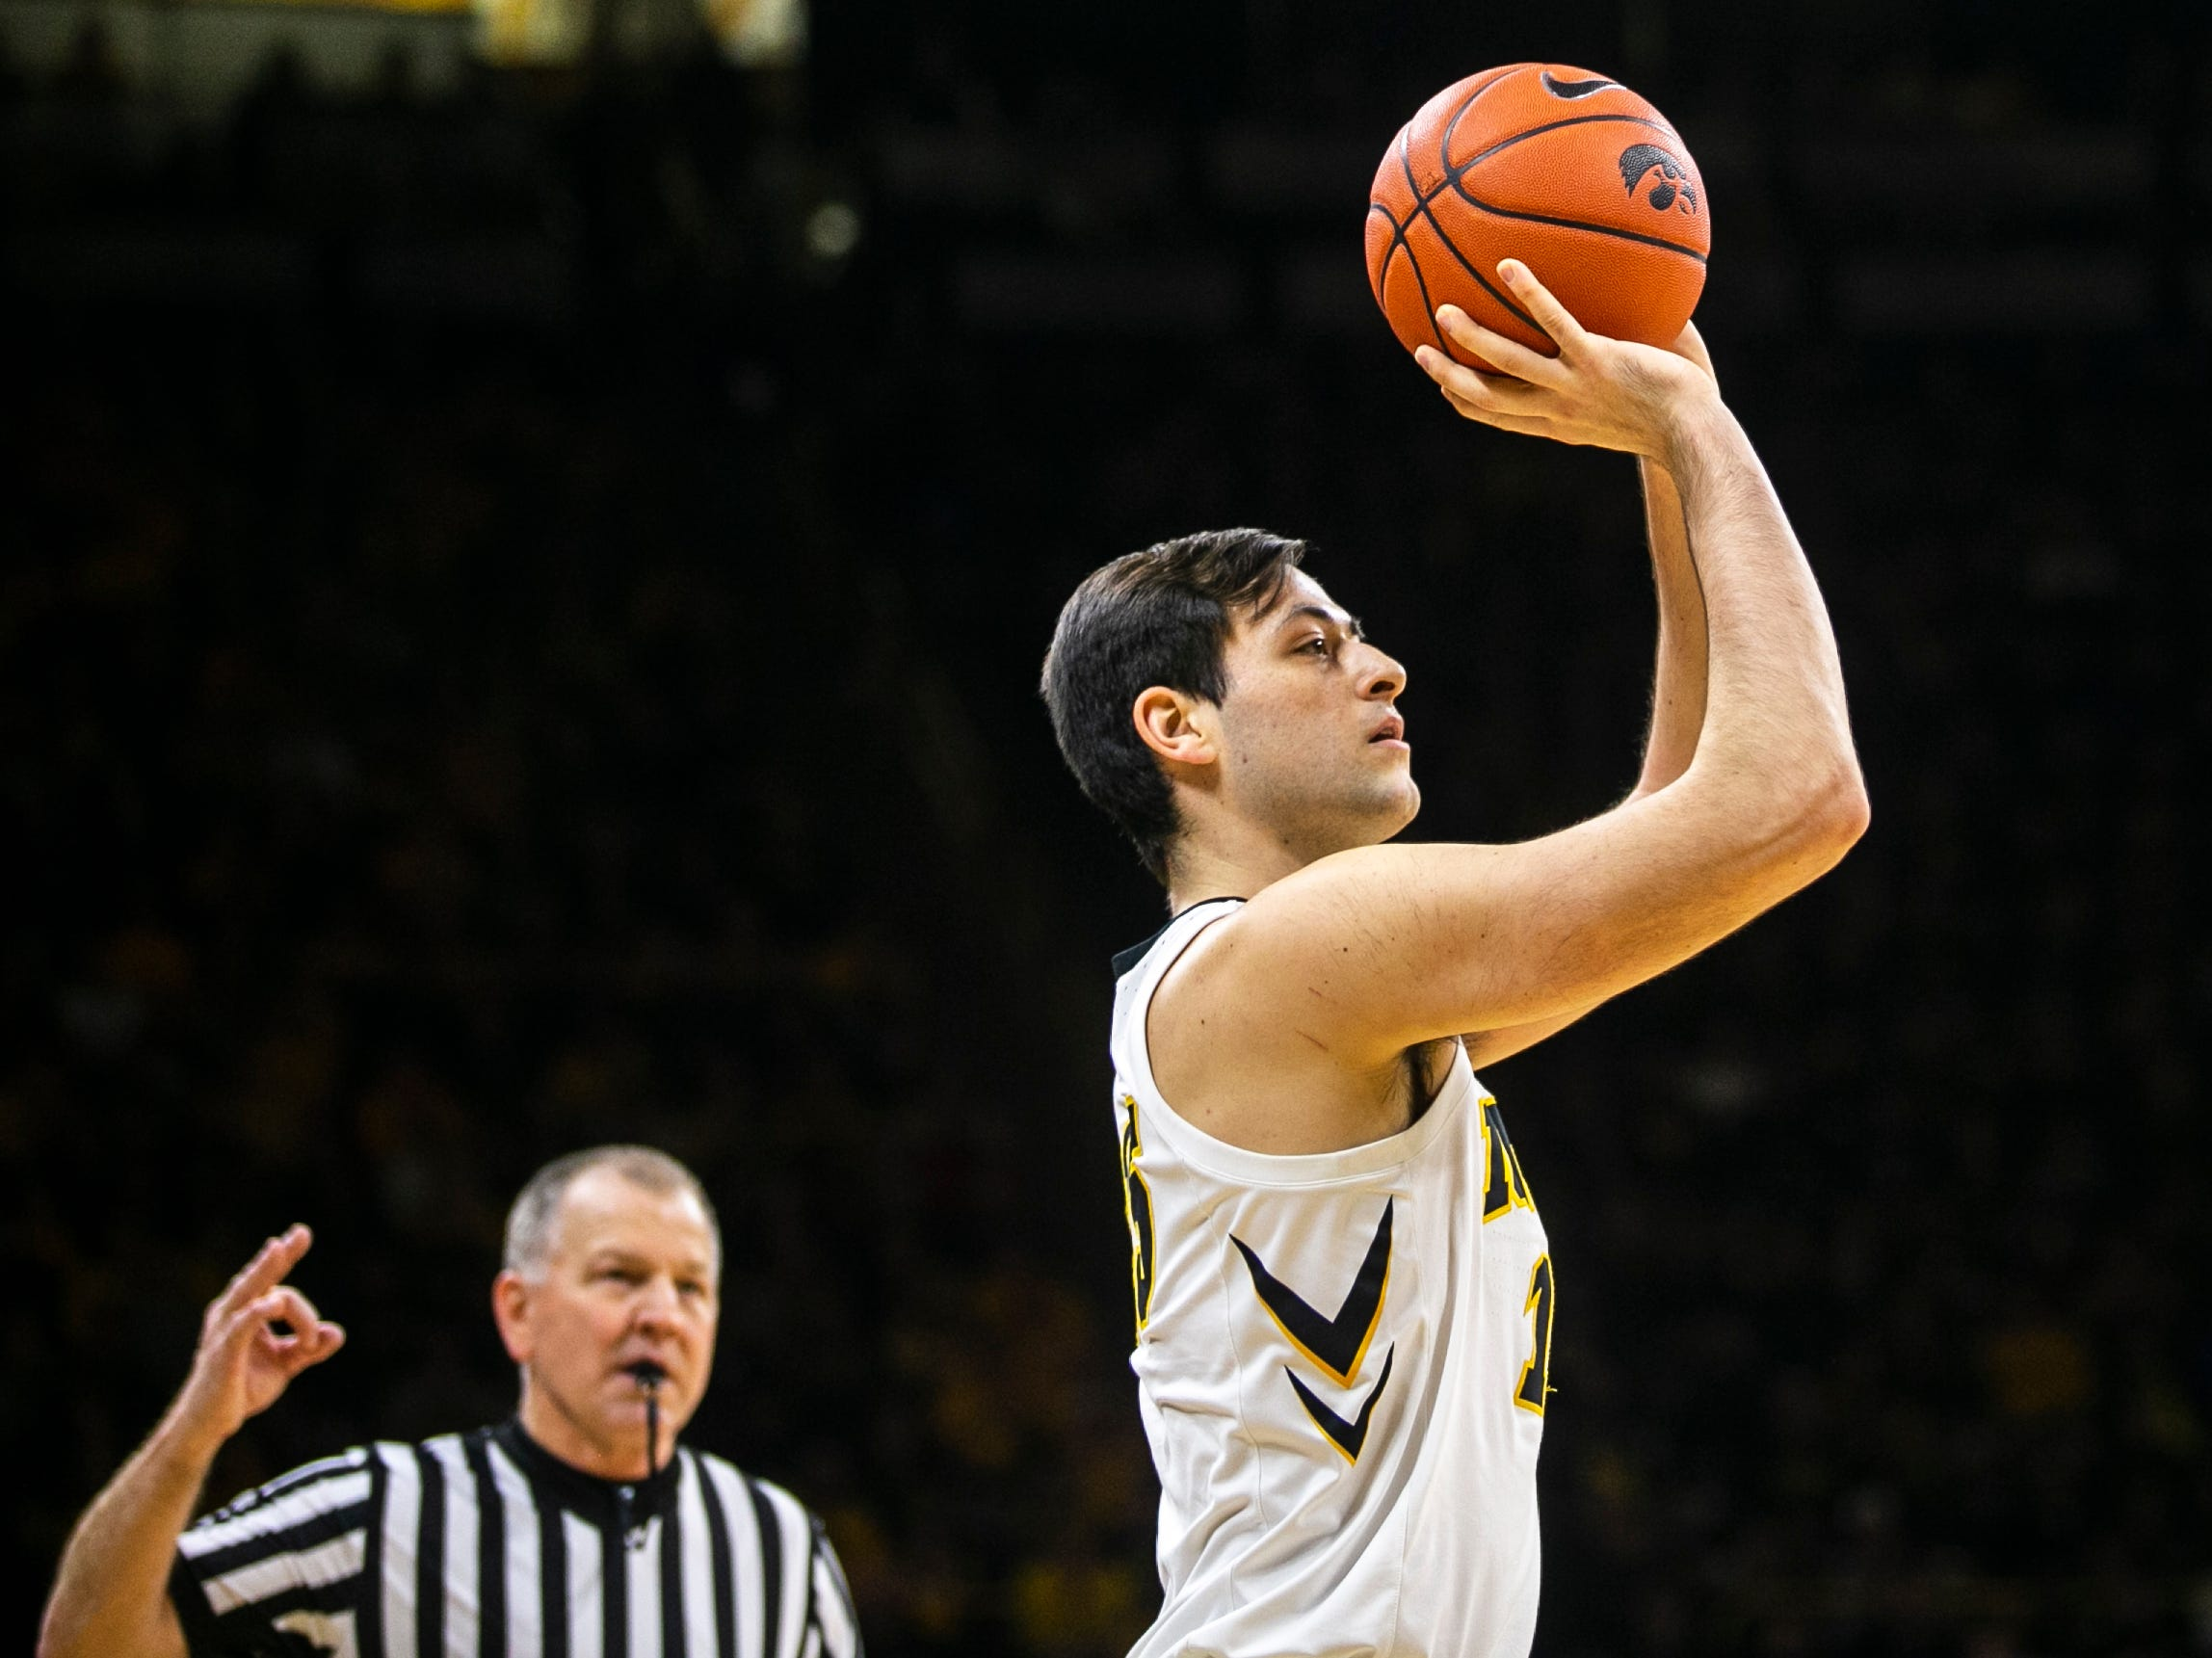 Iowa forward Ryan Kriener (15) shoots a 3-point basket during a NCAA Big Ten Conference men's basketball game on Friday, Feb. 1, 2019, at Carver-Hawkeye Arena in Iowa City, Iowa.